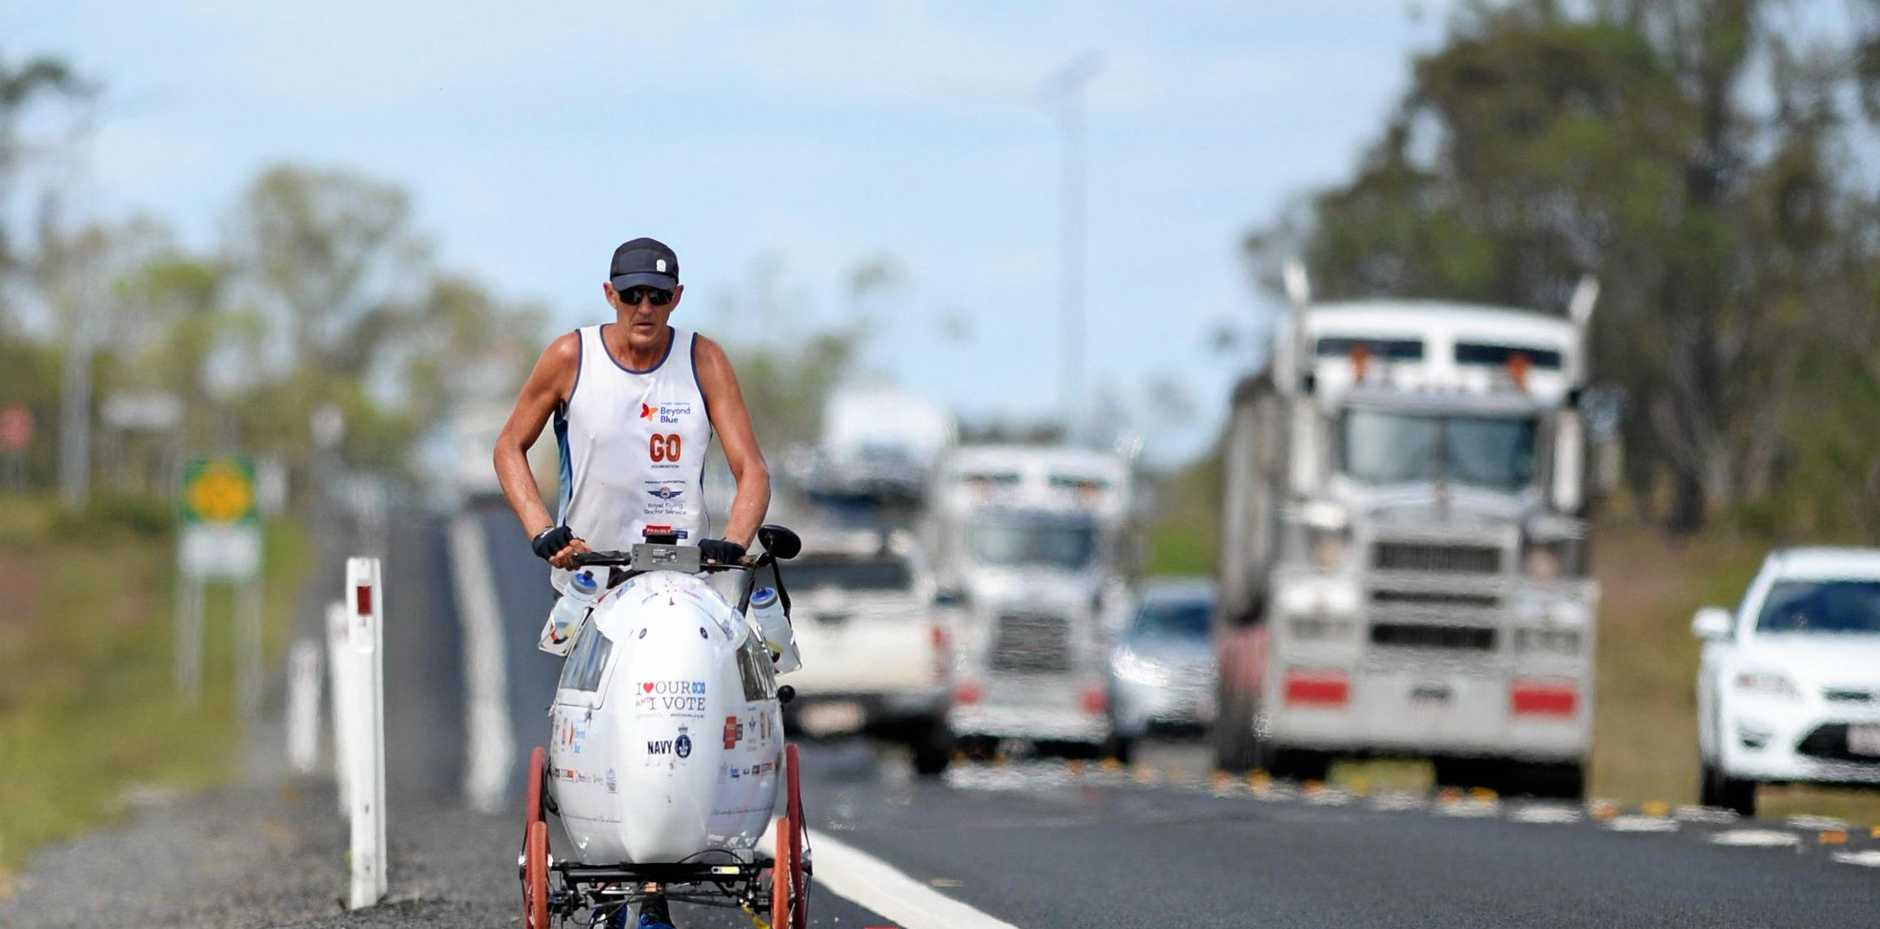 Melbourne's Andre Jones, 57, began his Run Around Australia for charity on March 10 and is aiming to become the first person in history to achieve the feat unassisted by a support vehicle.